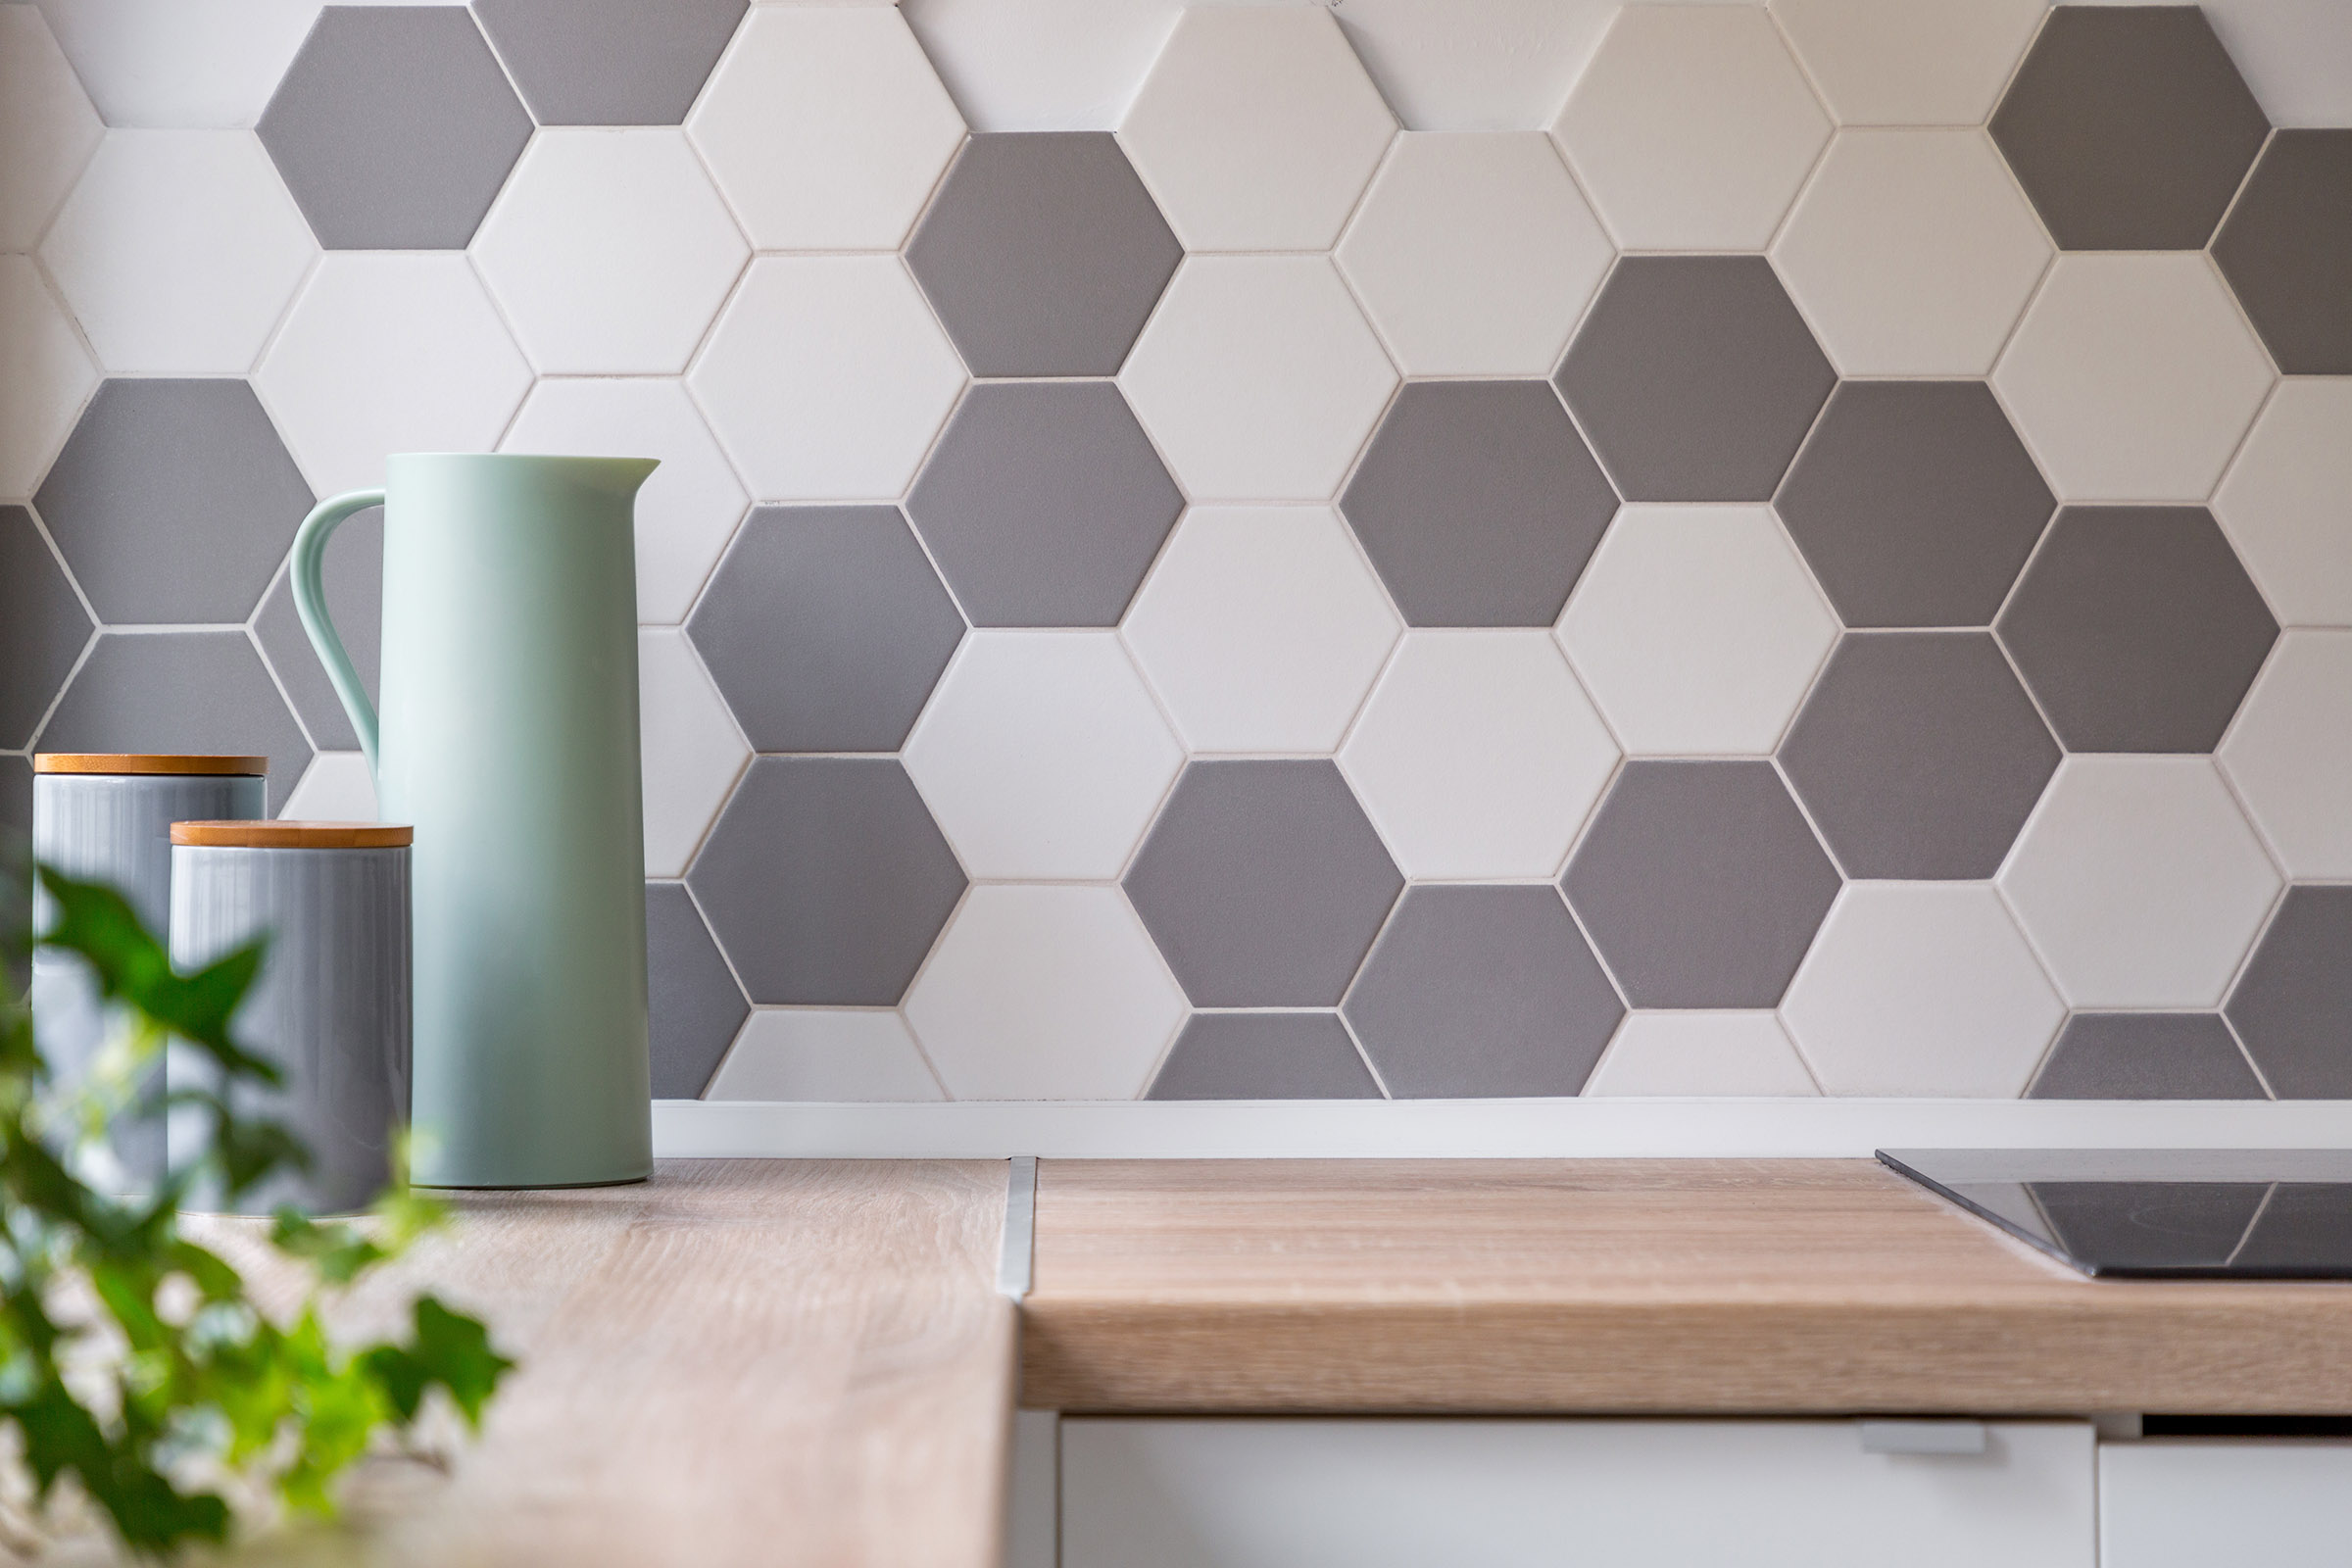 Honeycomb wall tiles and worktop